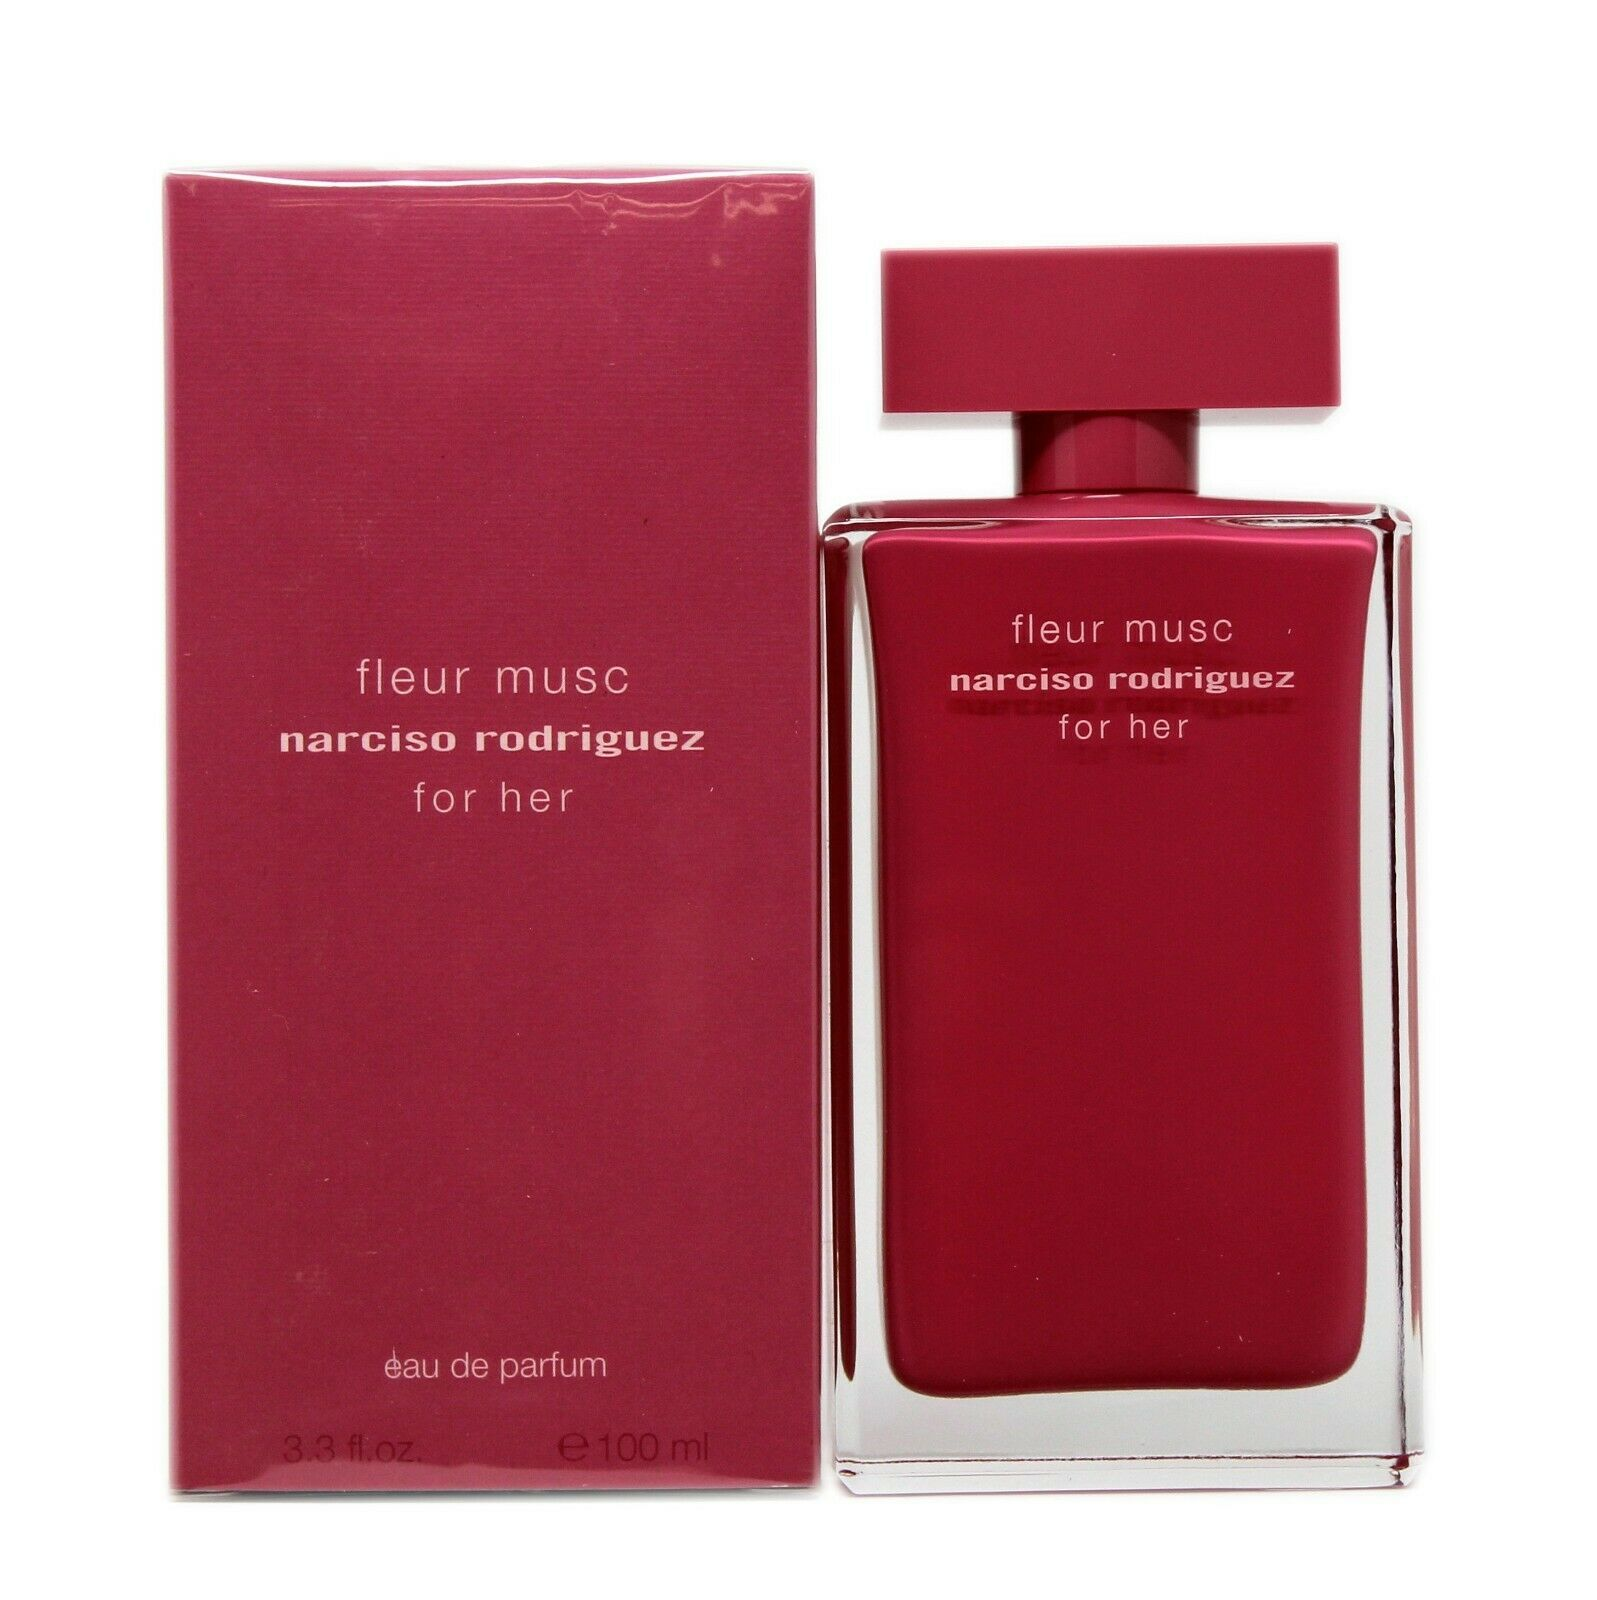 Primary image for NARCISO RODRIGUEZ FLEUR MUSC FOR HER EAU DE PARFUM SPRAY 100 ML/3.3 FL.OZ. NIB